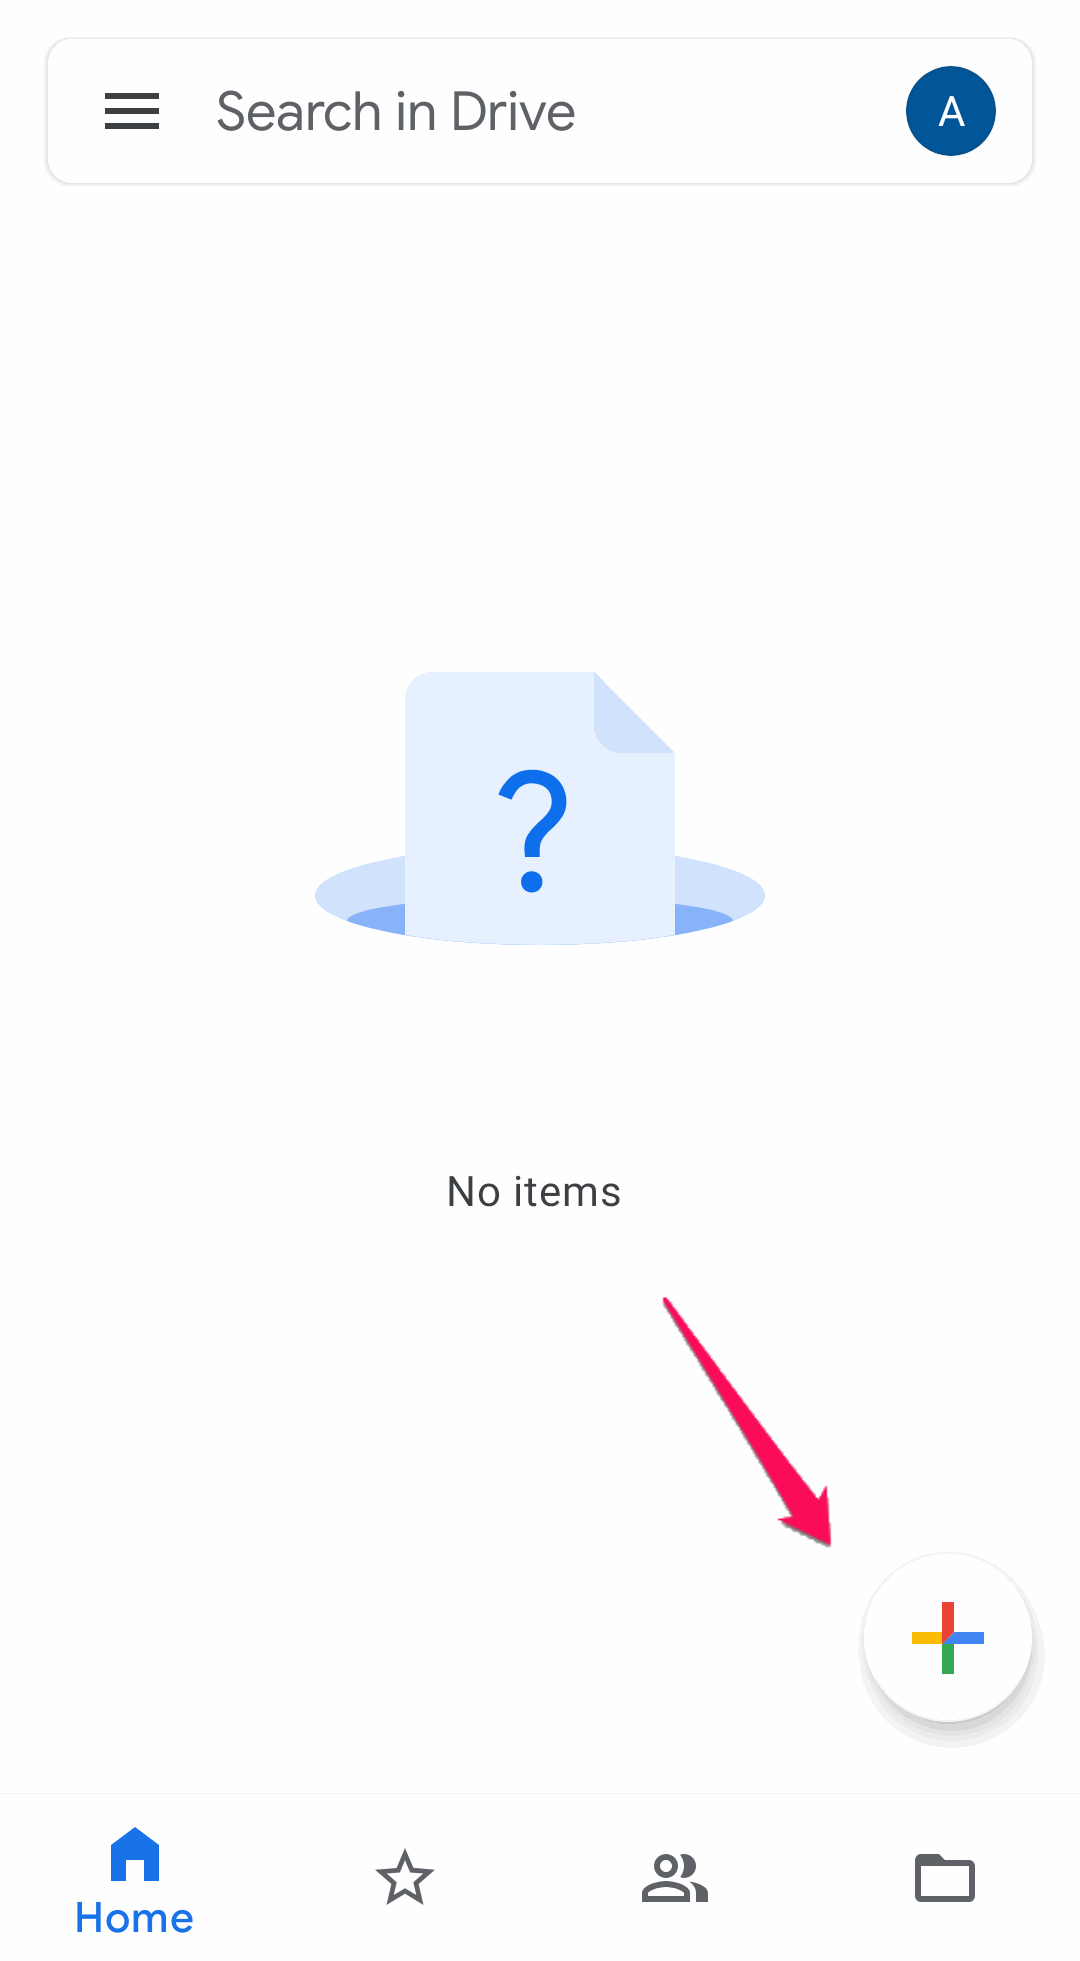 click + icon to upload files